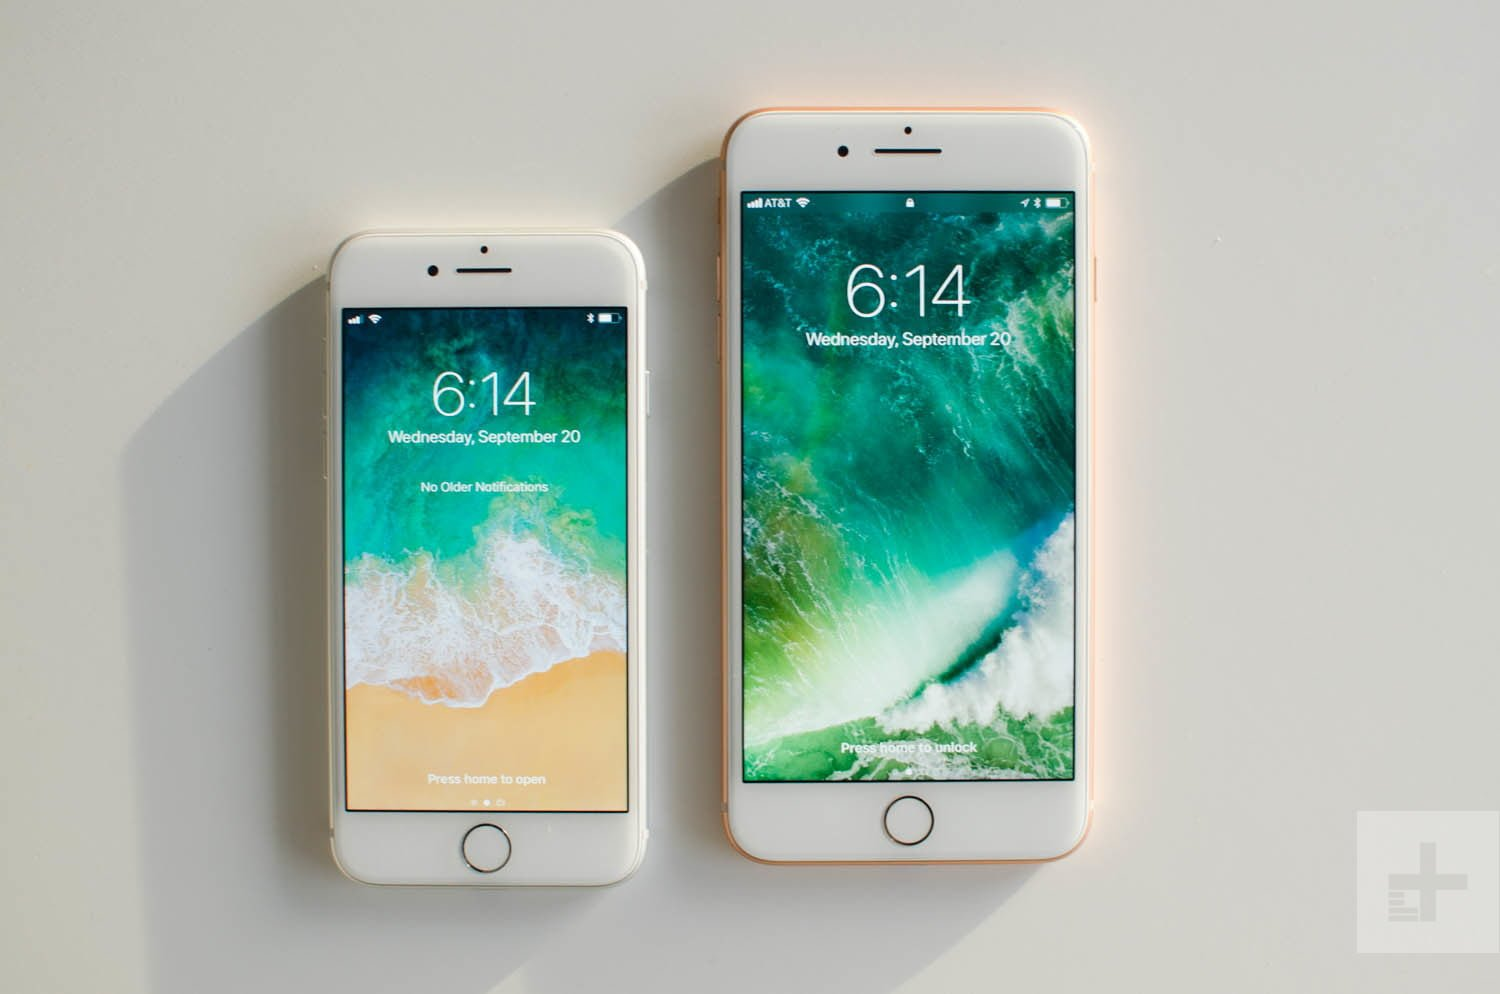 iPhone 8 Plus outsells iPhone X, according to CIRP